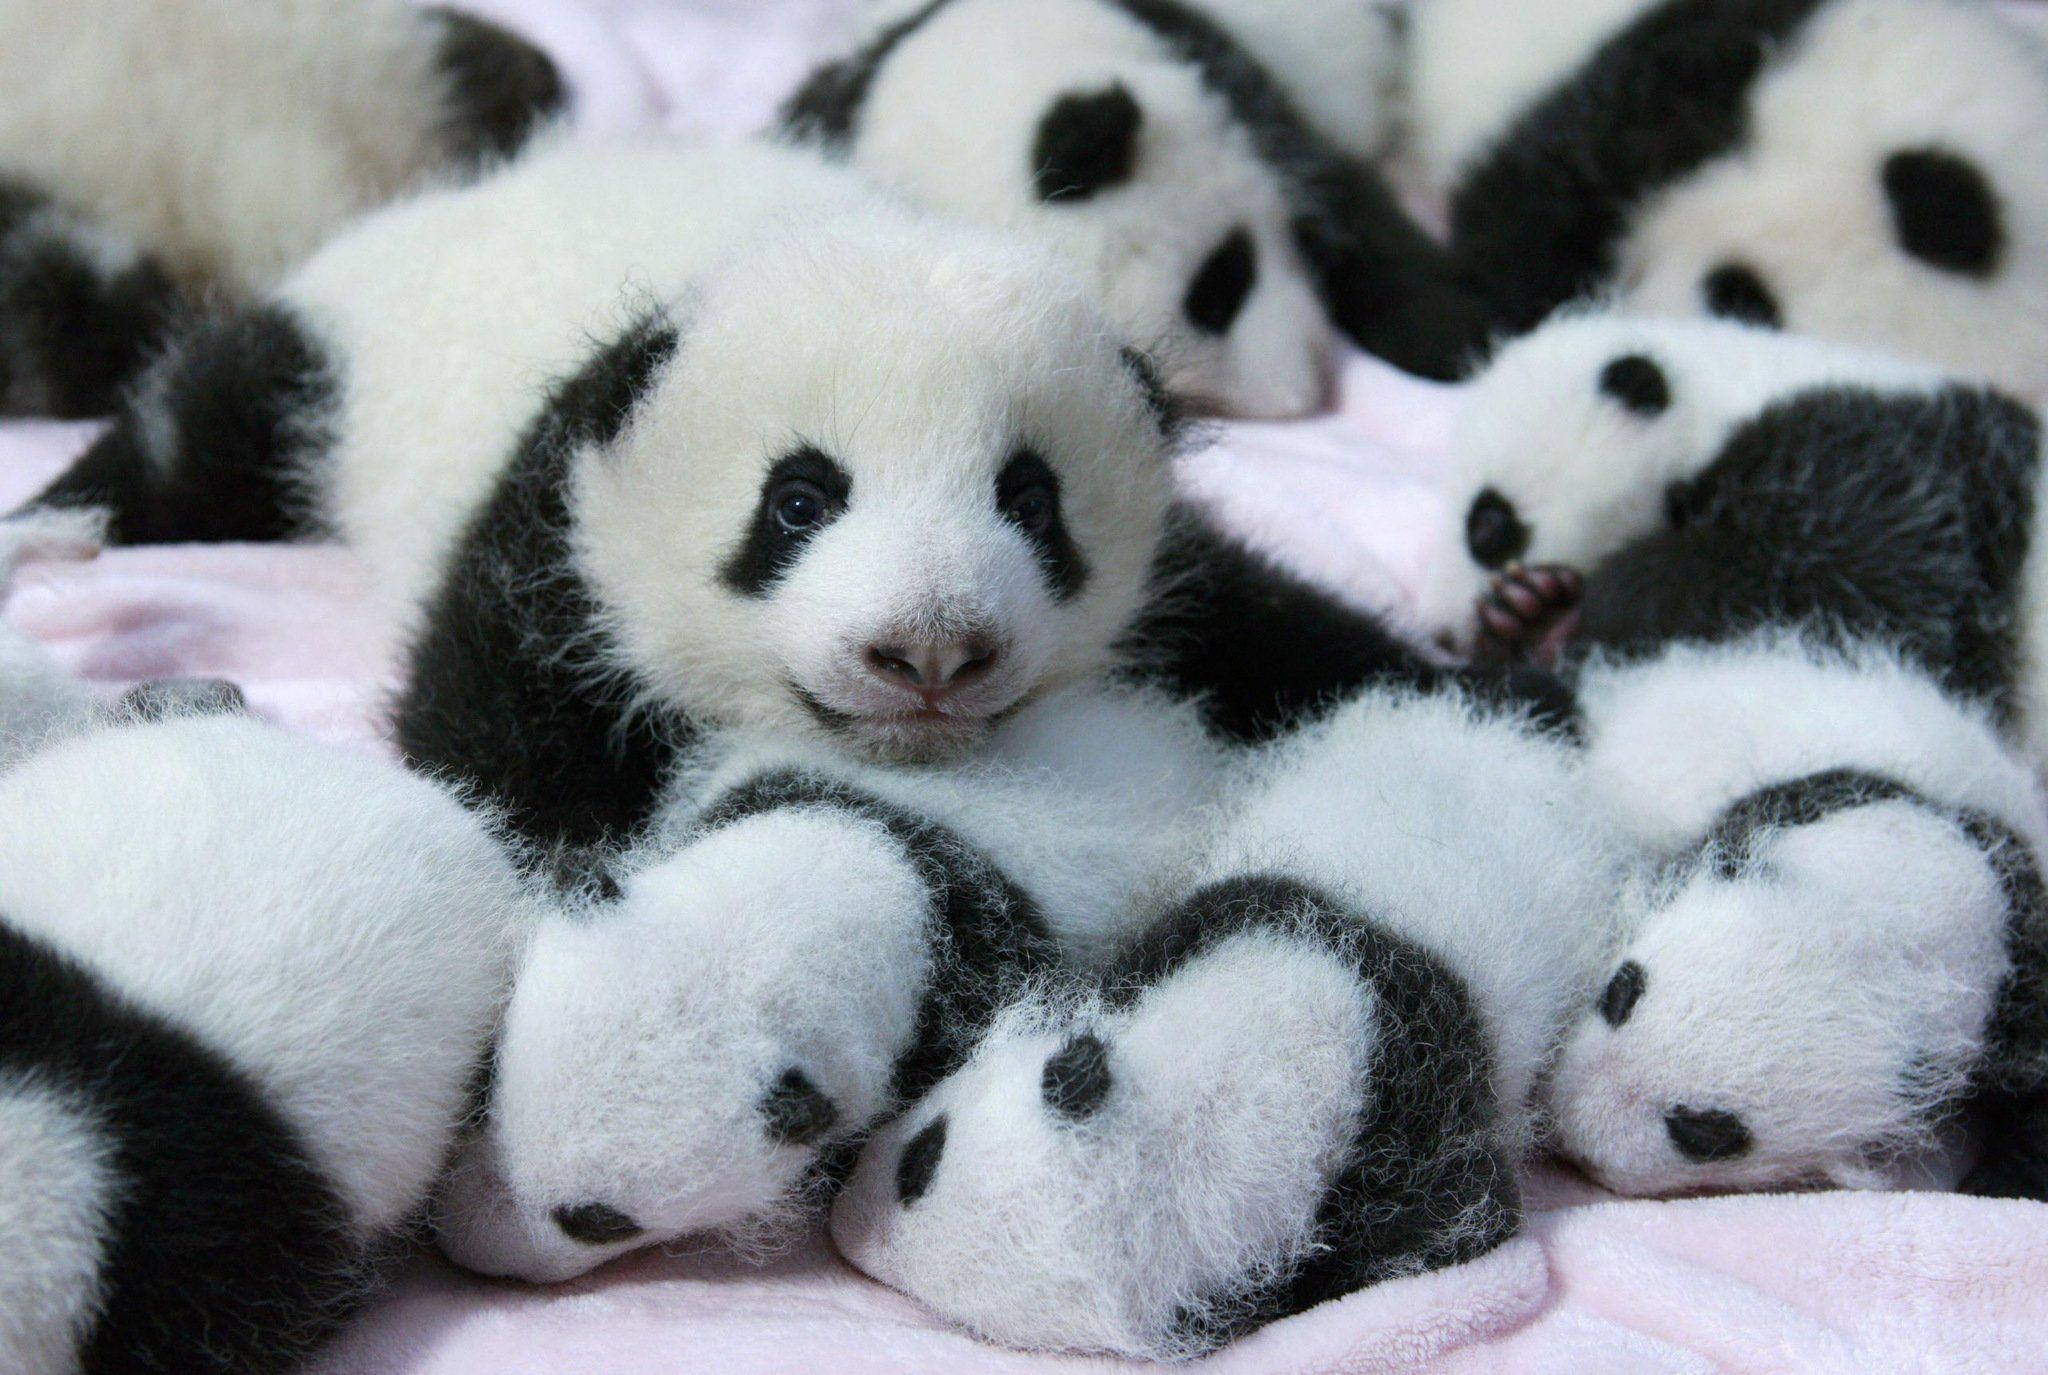 2048x1375 Panda Pandas Baer Bears Baby Cute Iphone Wallpaper #24045 - The HD .